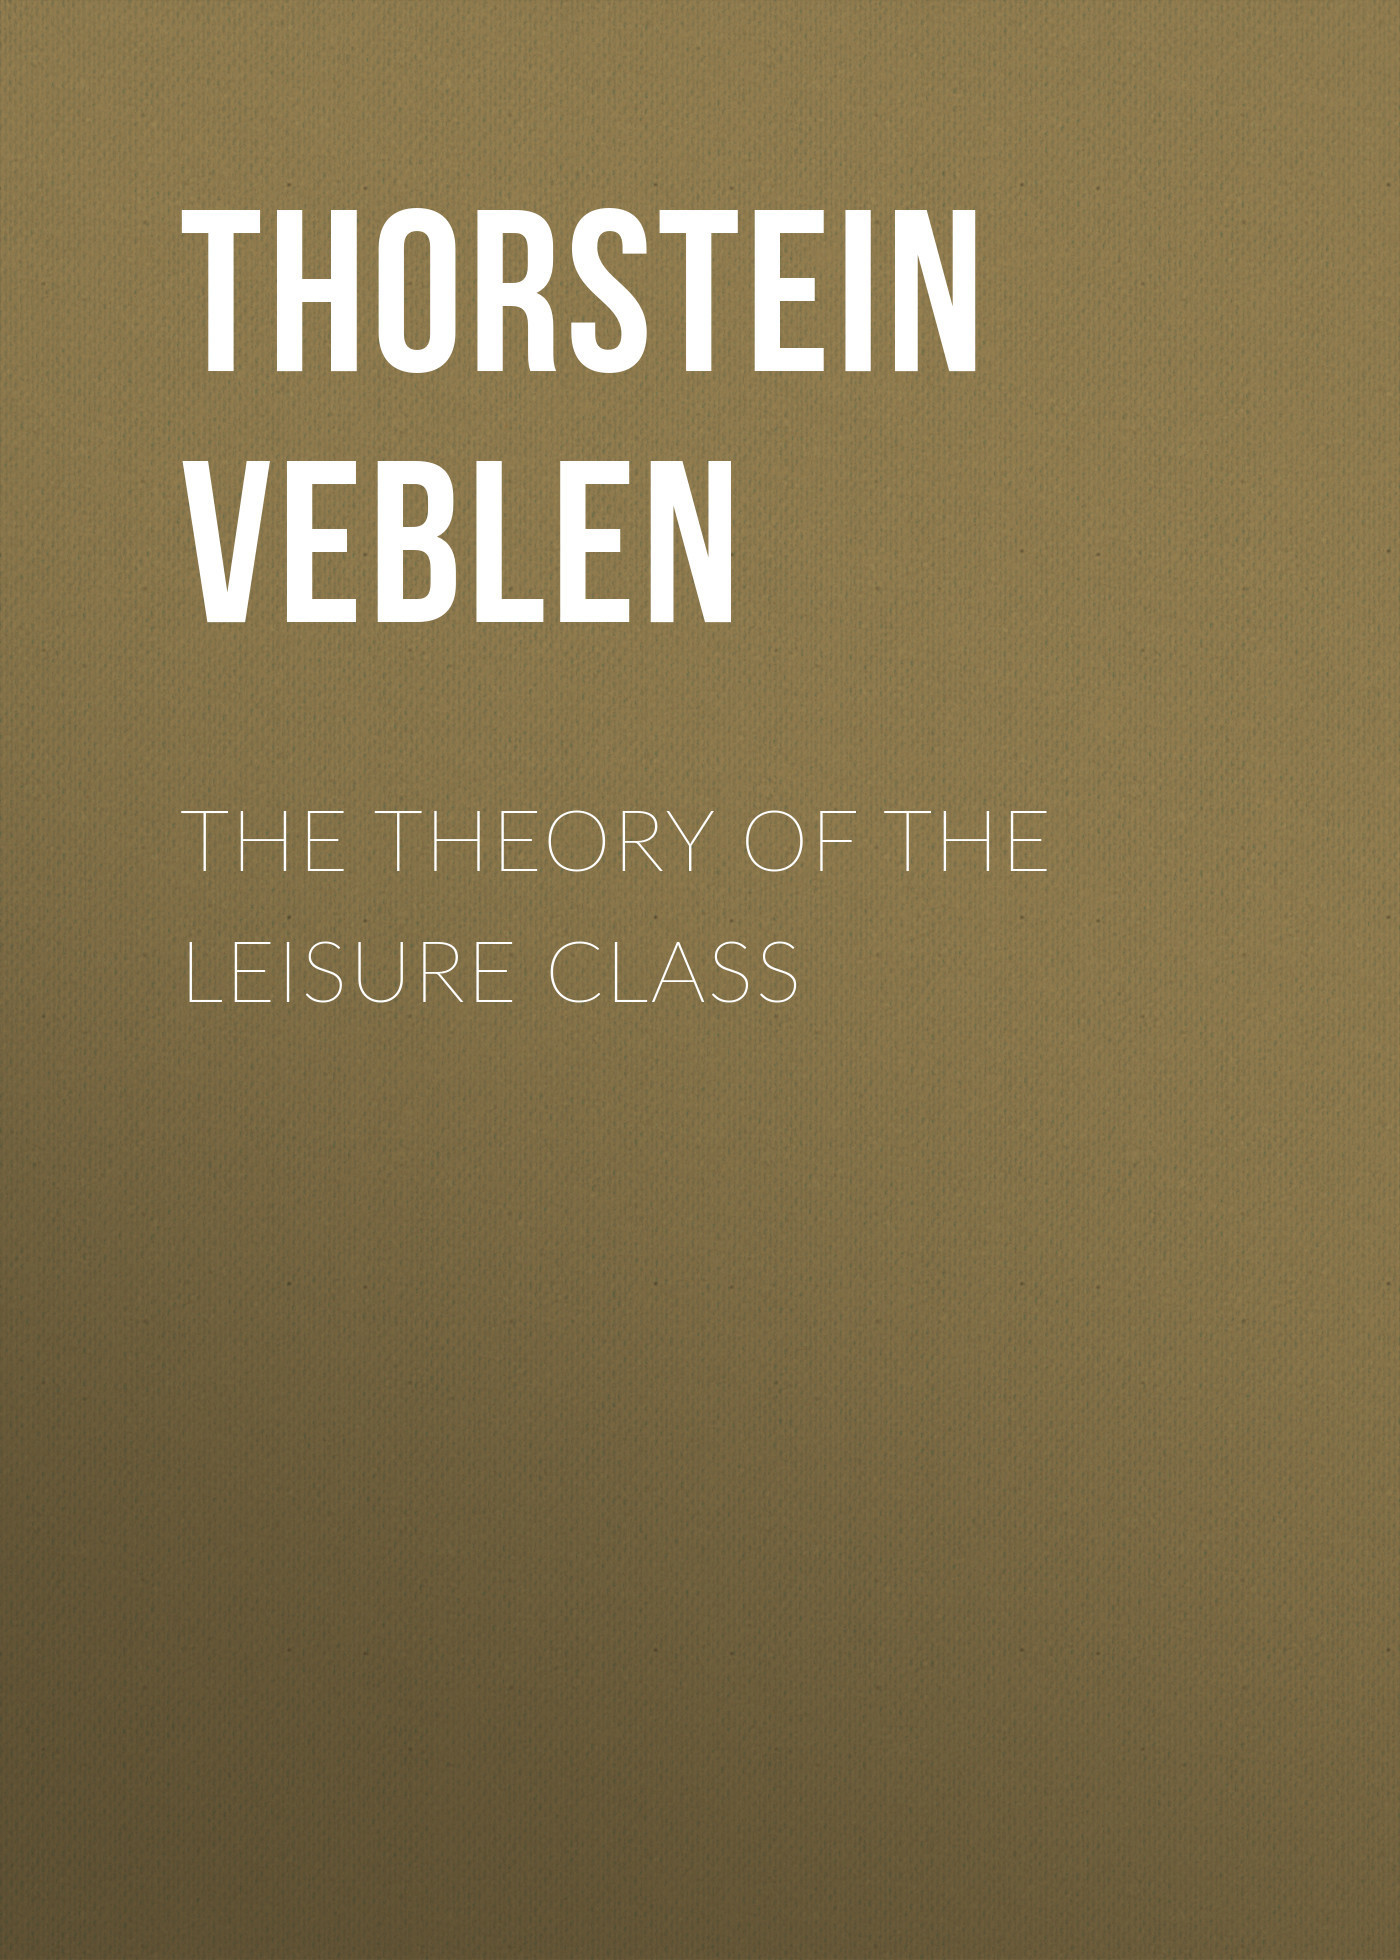 Thorstein Veblen The Theory of the Leisure Class oudiniao sports and leisure shoes